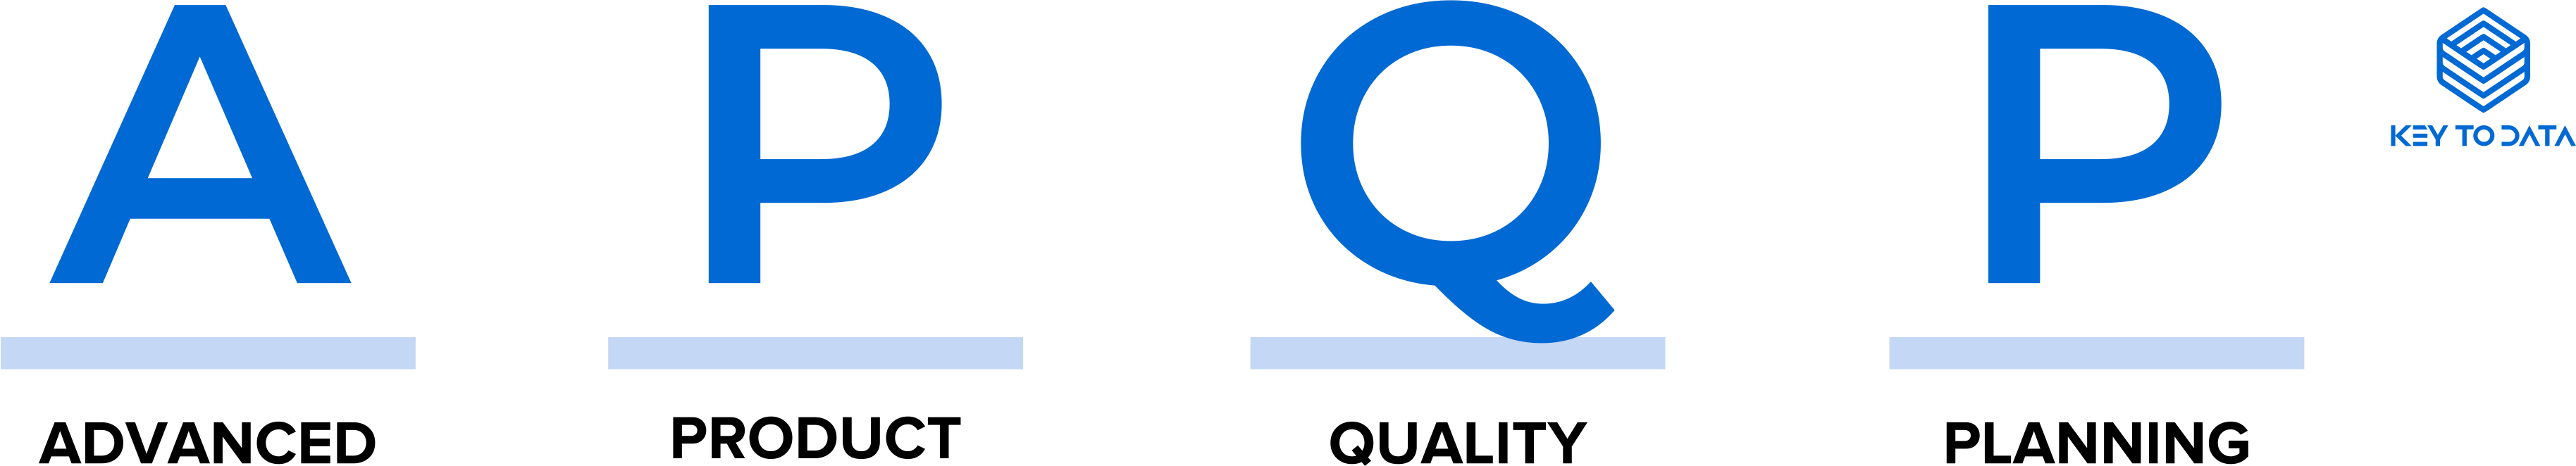 APQP-Advanced-Product-Quality-Planning-Erklaerung